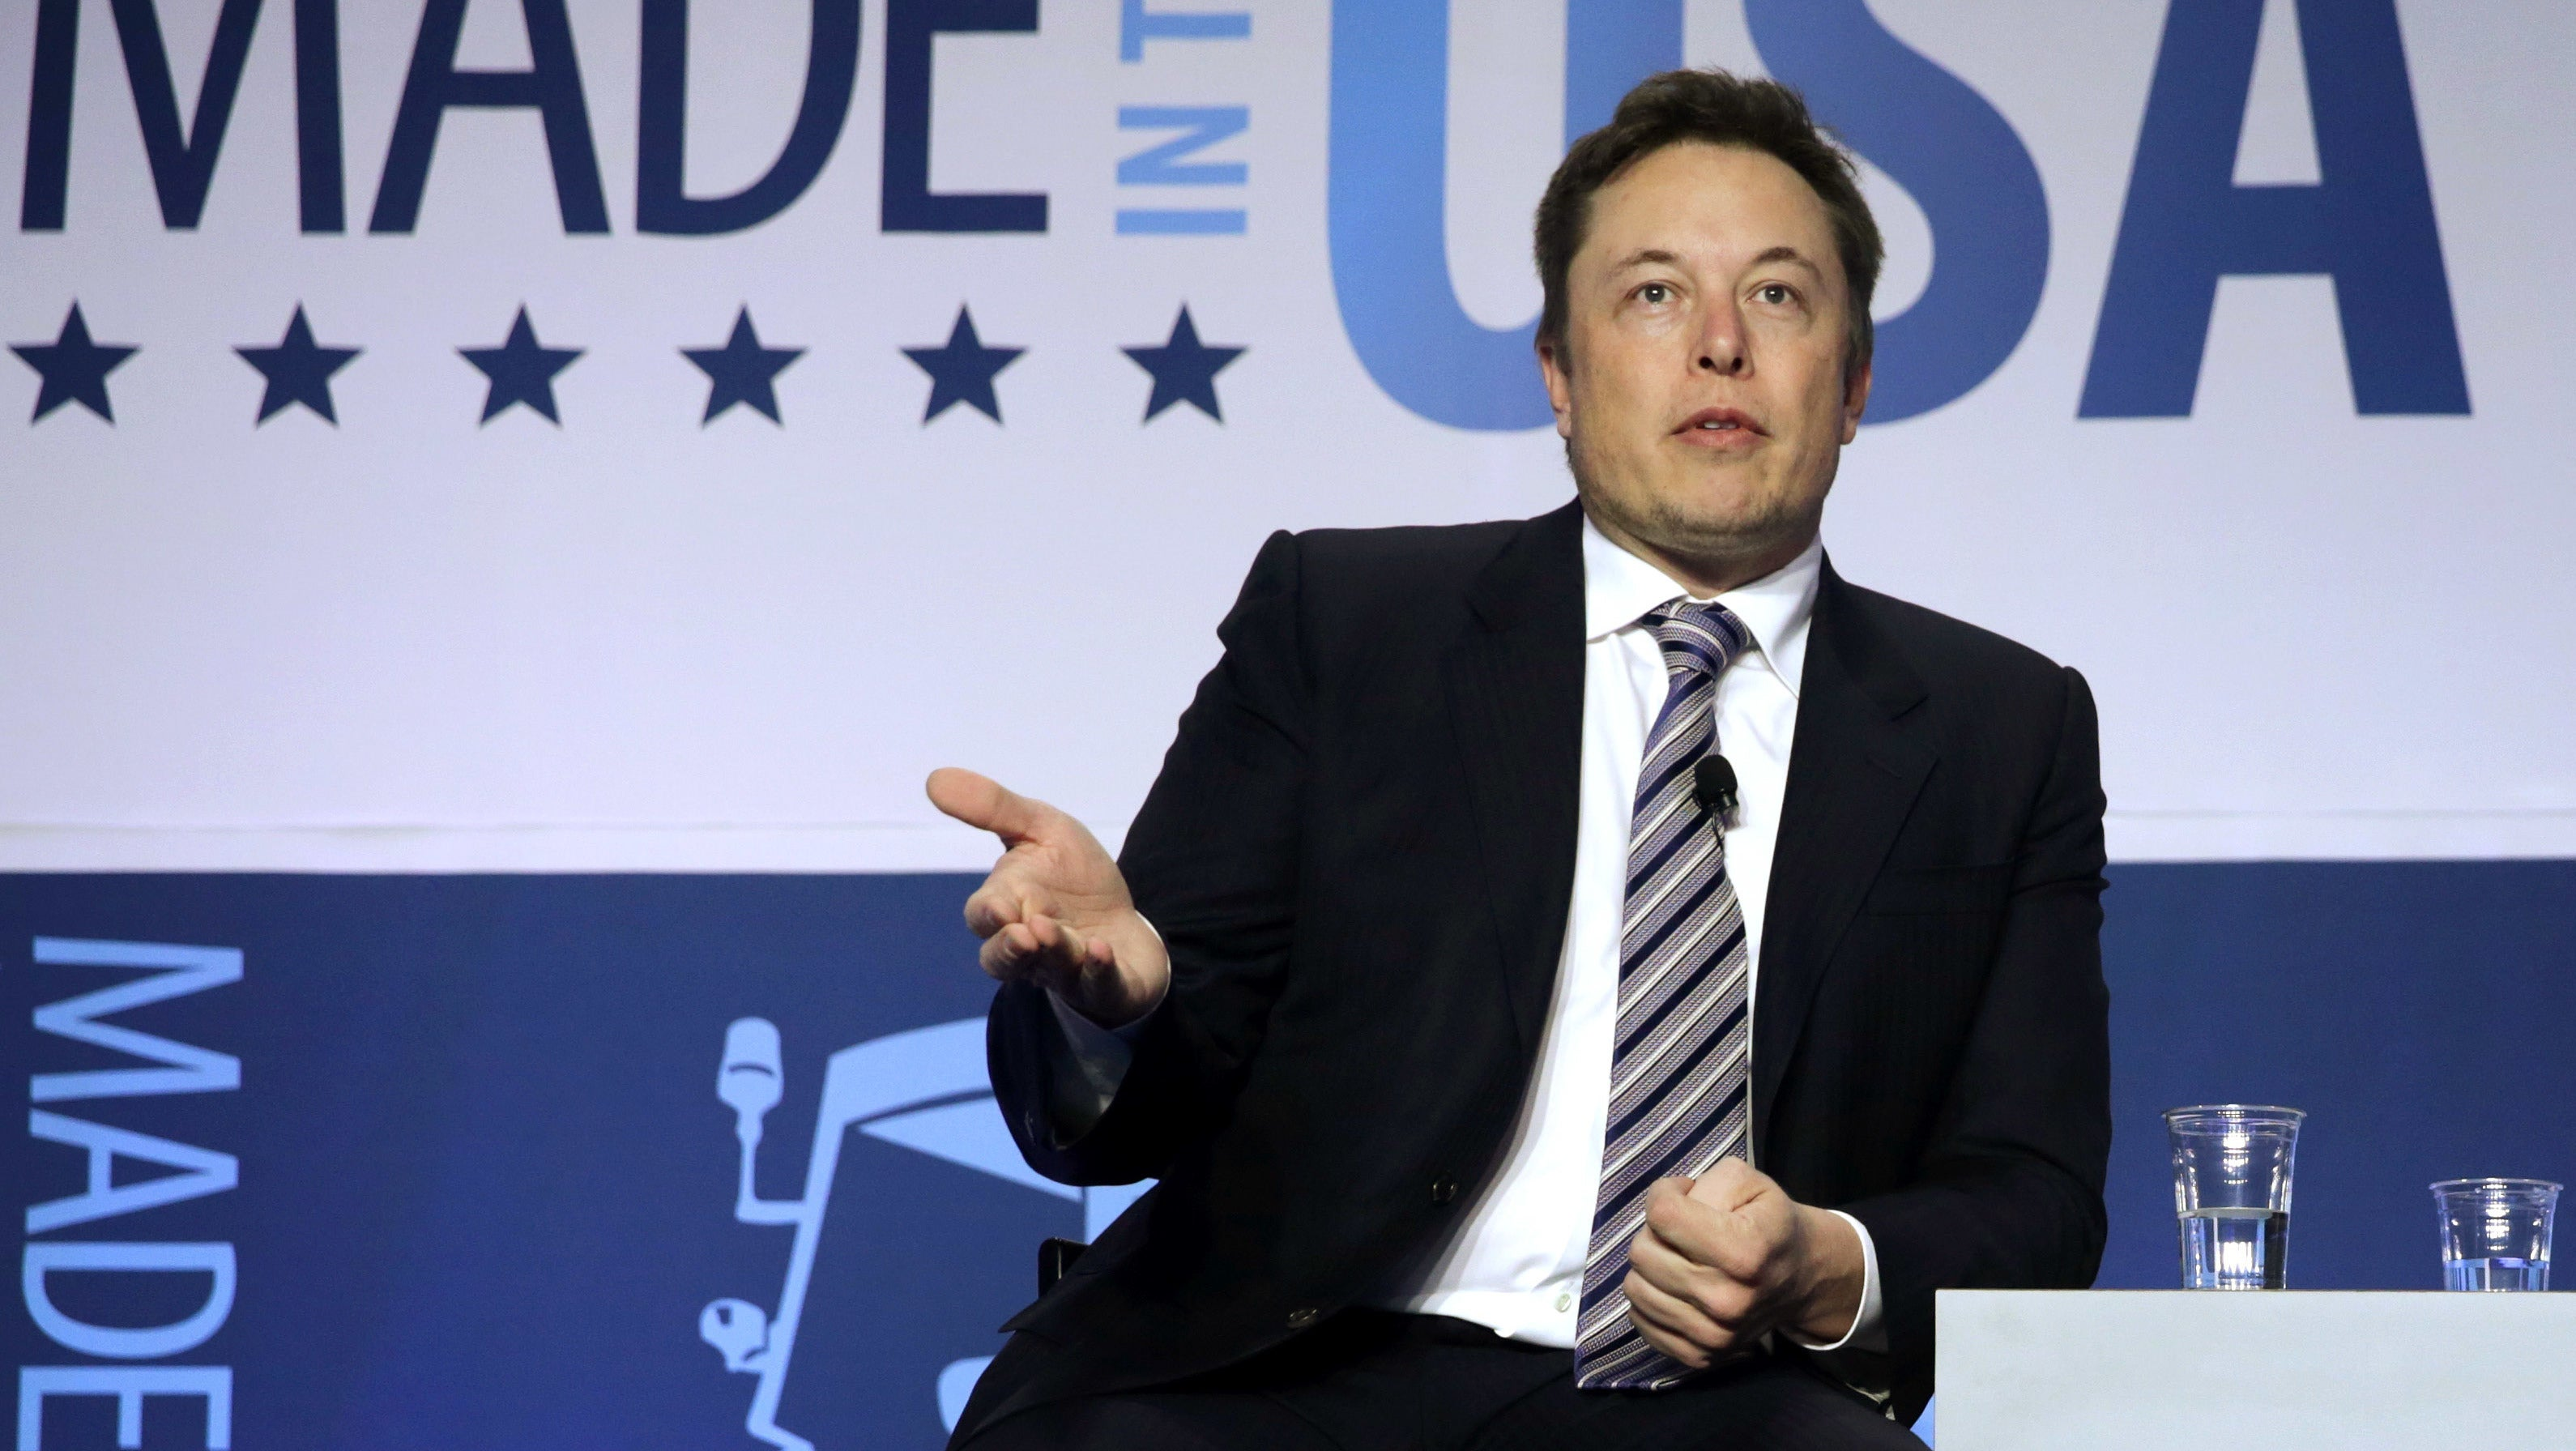 Elon Musk's Lawyers Say Calling Cave Diver A 'Pedo' Had No 'Factual Basis' In Bid To Drop Suit